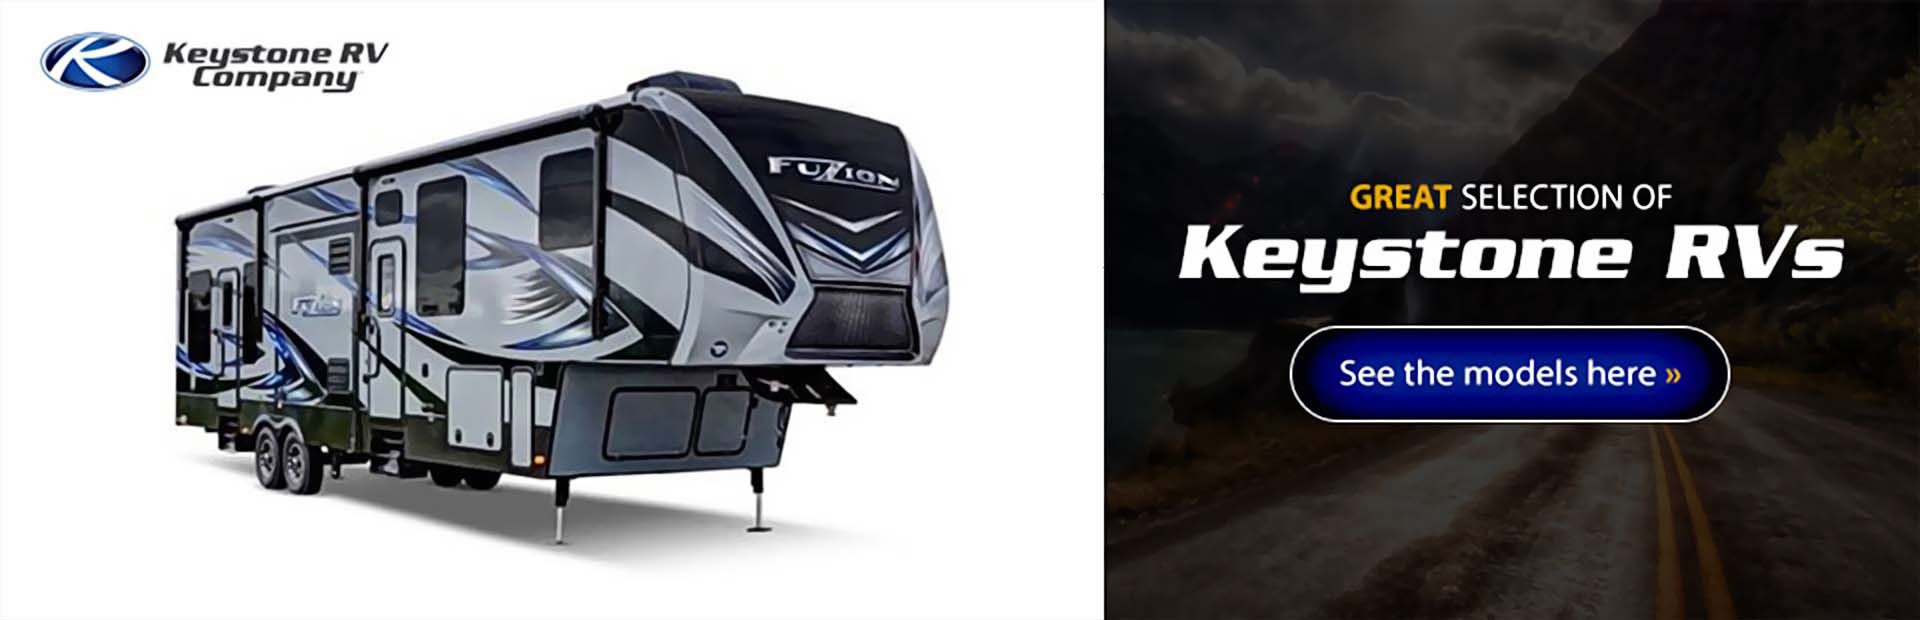 Keystone RVs: Click here to view the models.